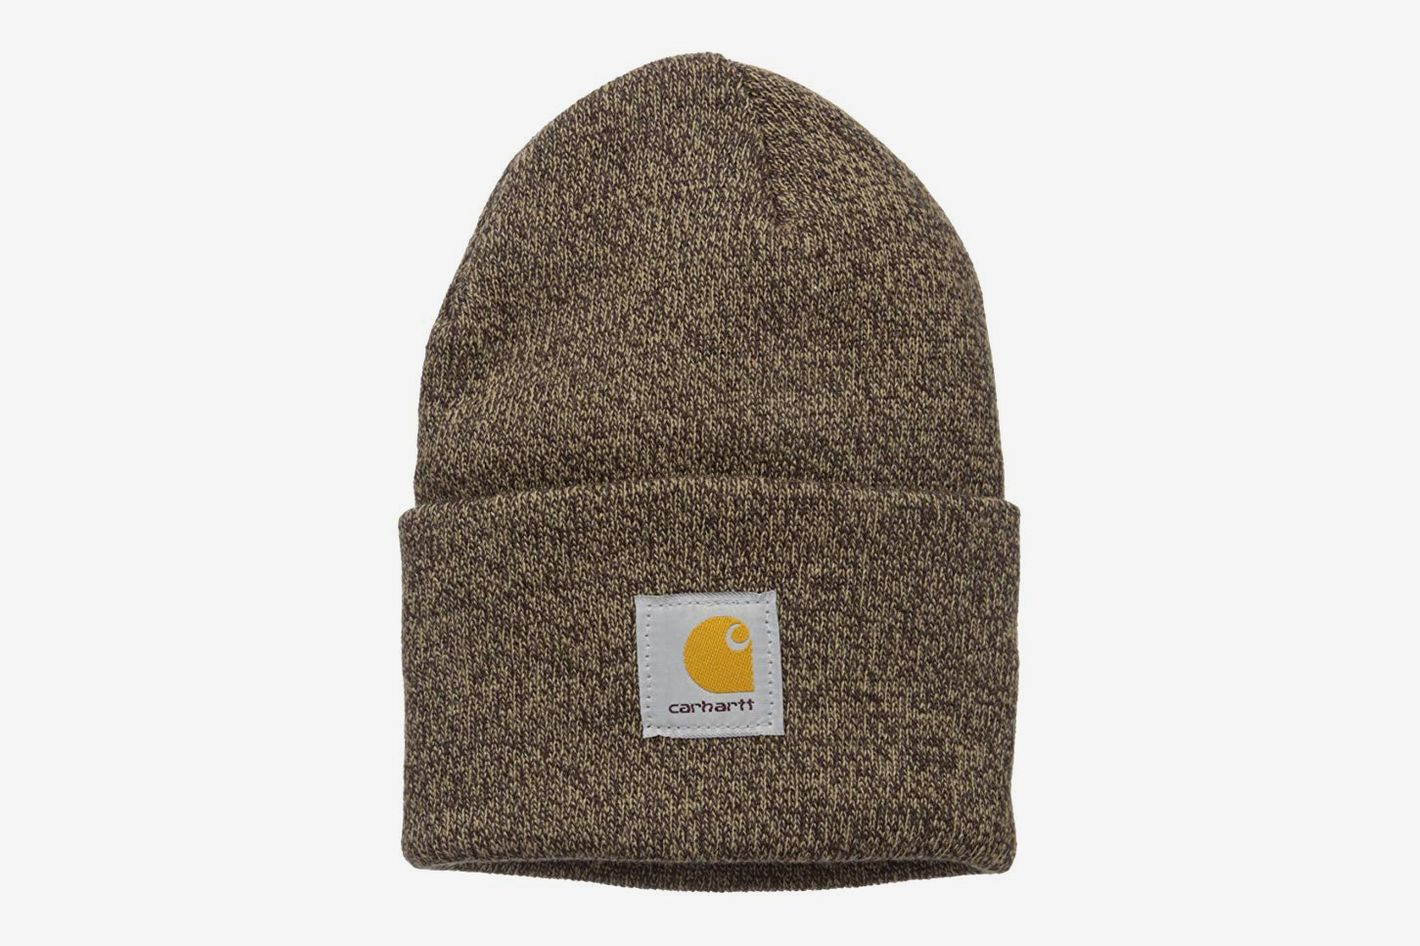 99d40808d4872 Carhartt Beanies Are Everywhere. Here s Why.